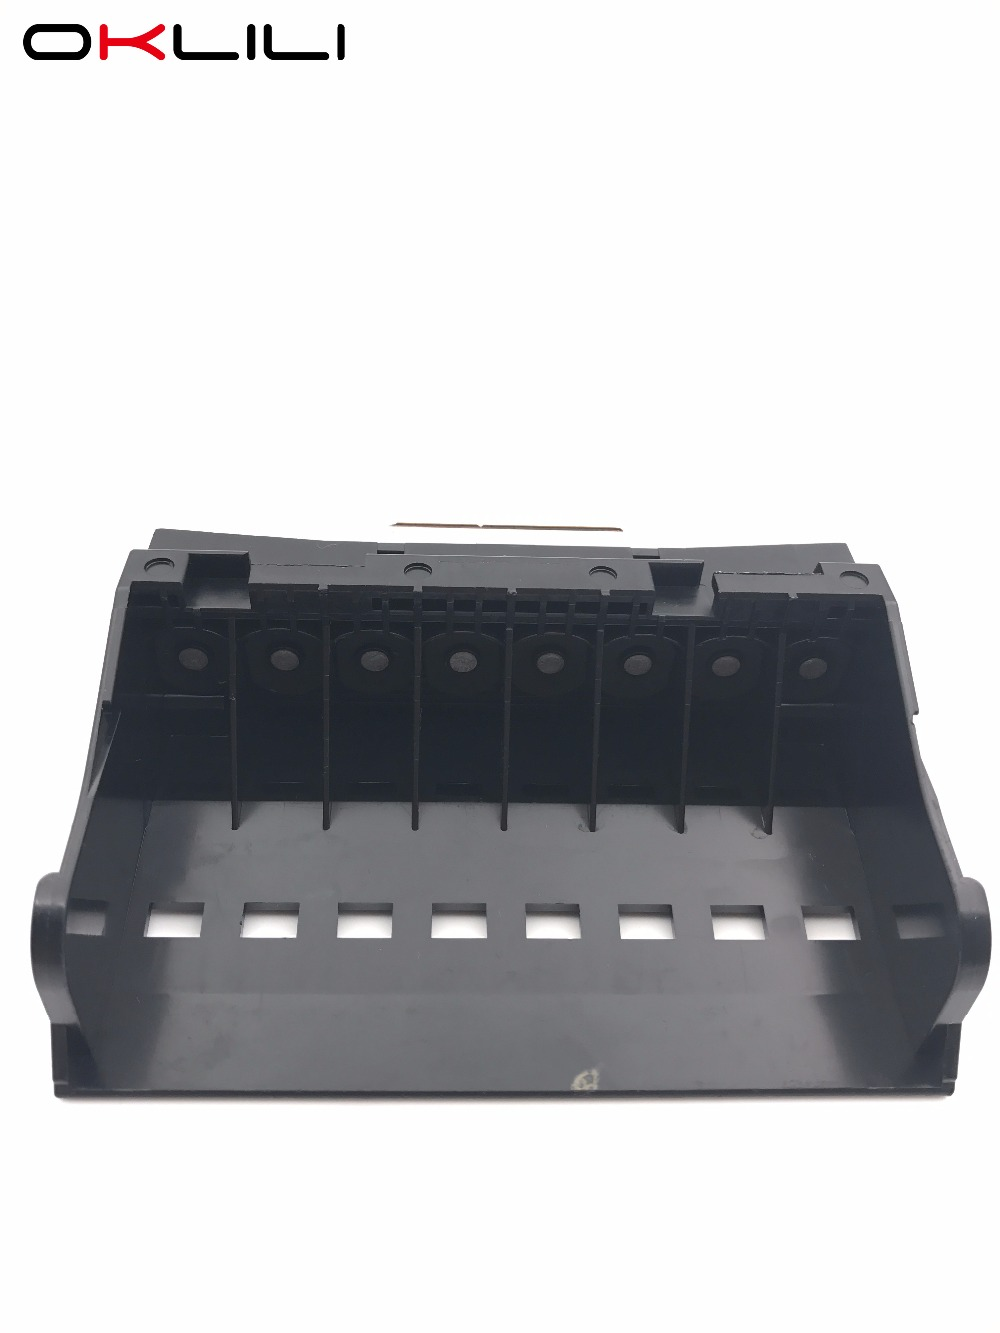 все цены на OKLILI QY6-0076 Printhead Print Head Printer Head for Canon PIXUS 9900i i9900 i9950 iP8600 iP8500 iP9910 Pro9000 Mark II онлайн